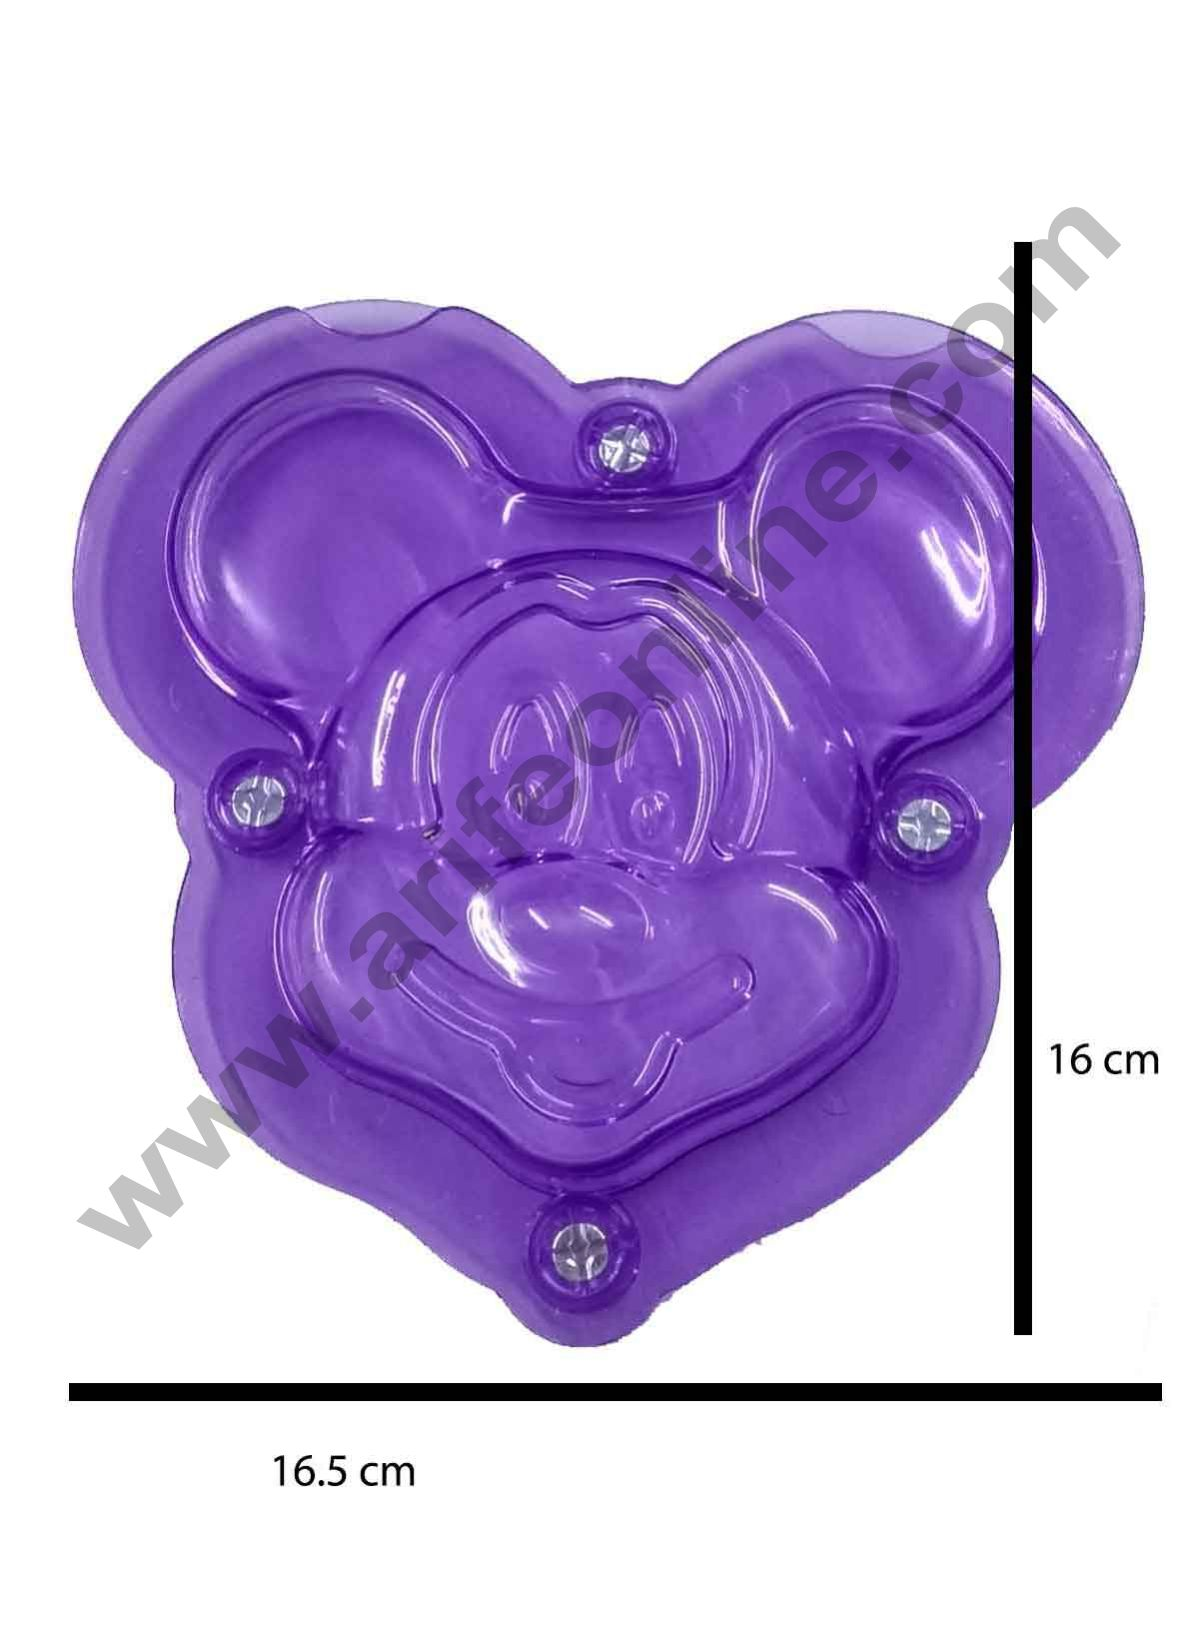 Cake Decor Polycarbonate 3D Mickey Mouse Face Chocolate Mold Cake Decorating Chocolate Mould Tools